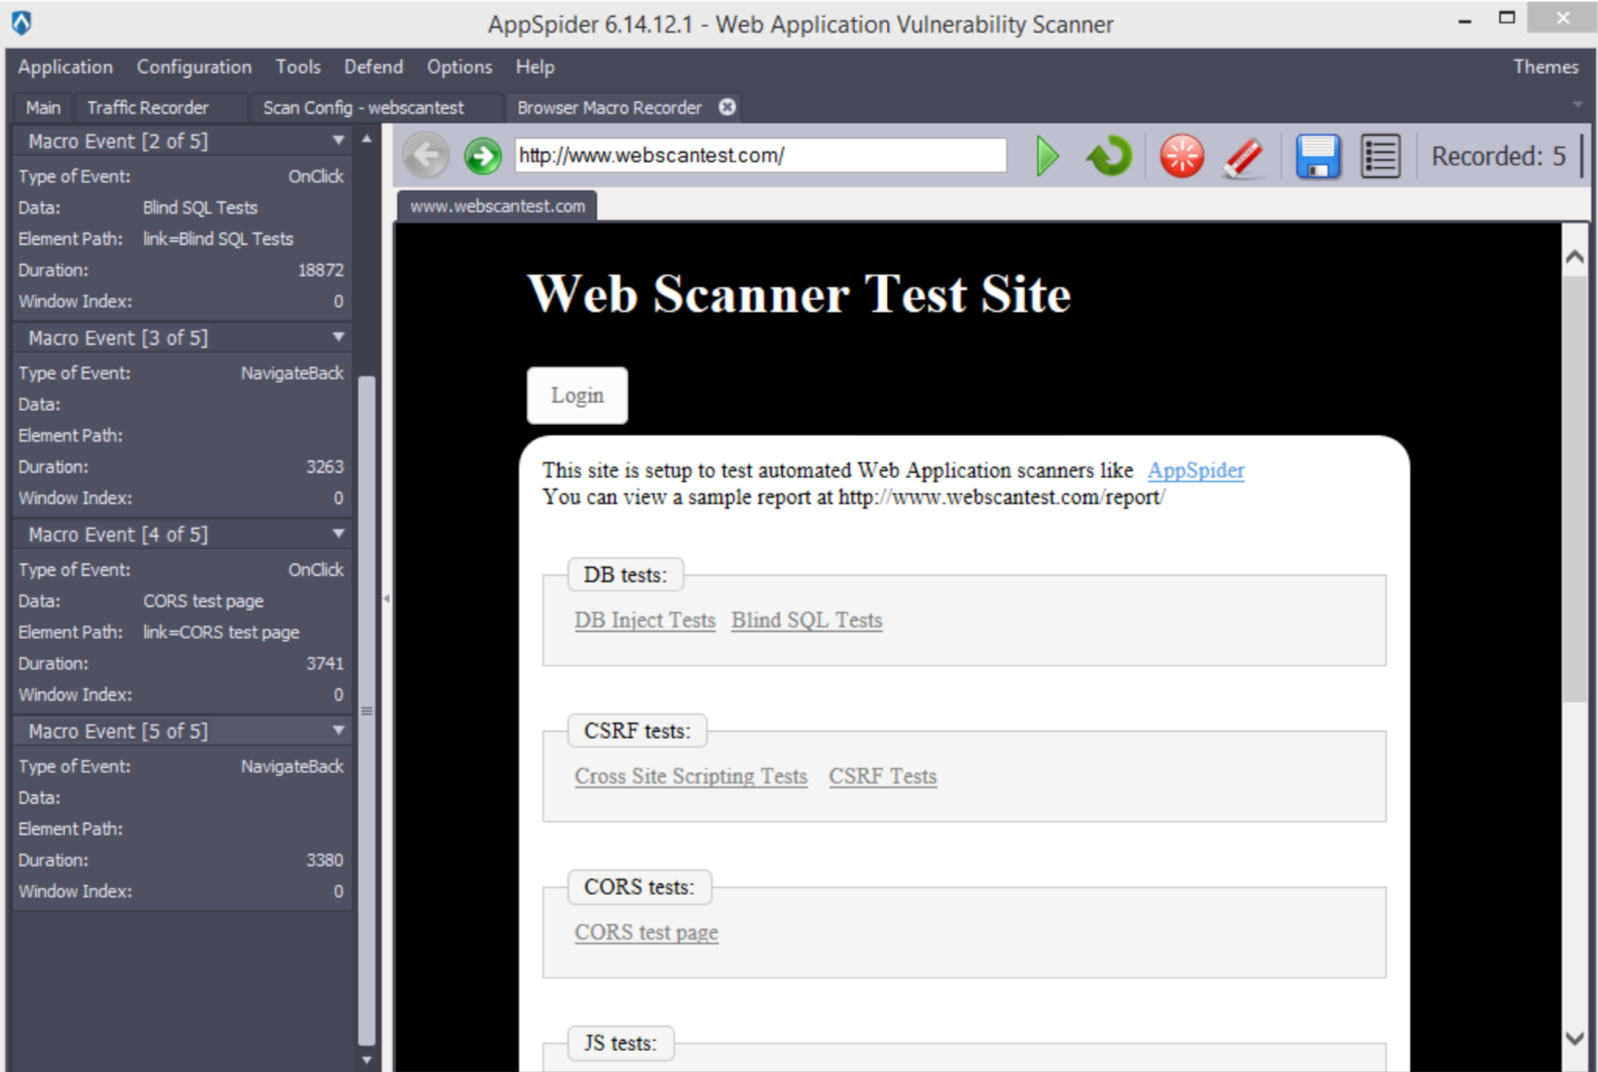 Browser Macro Recorder